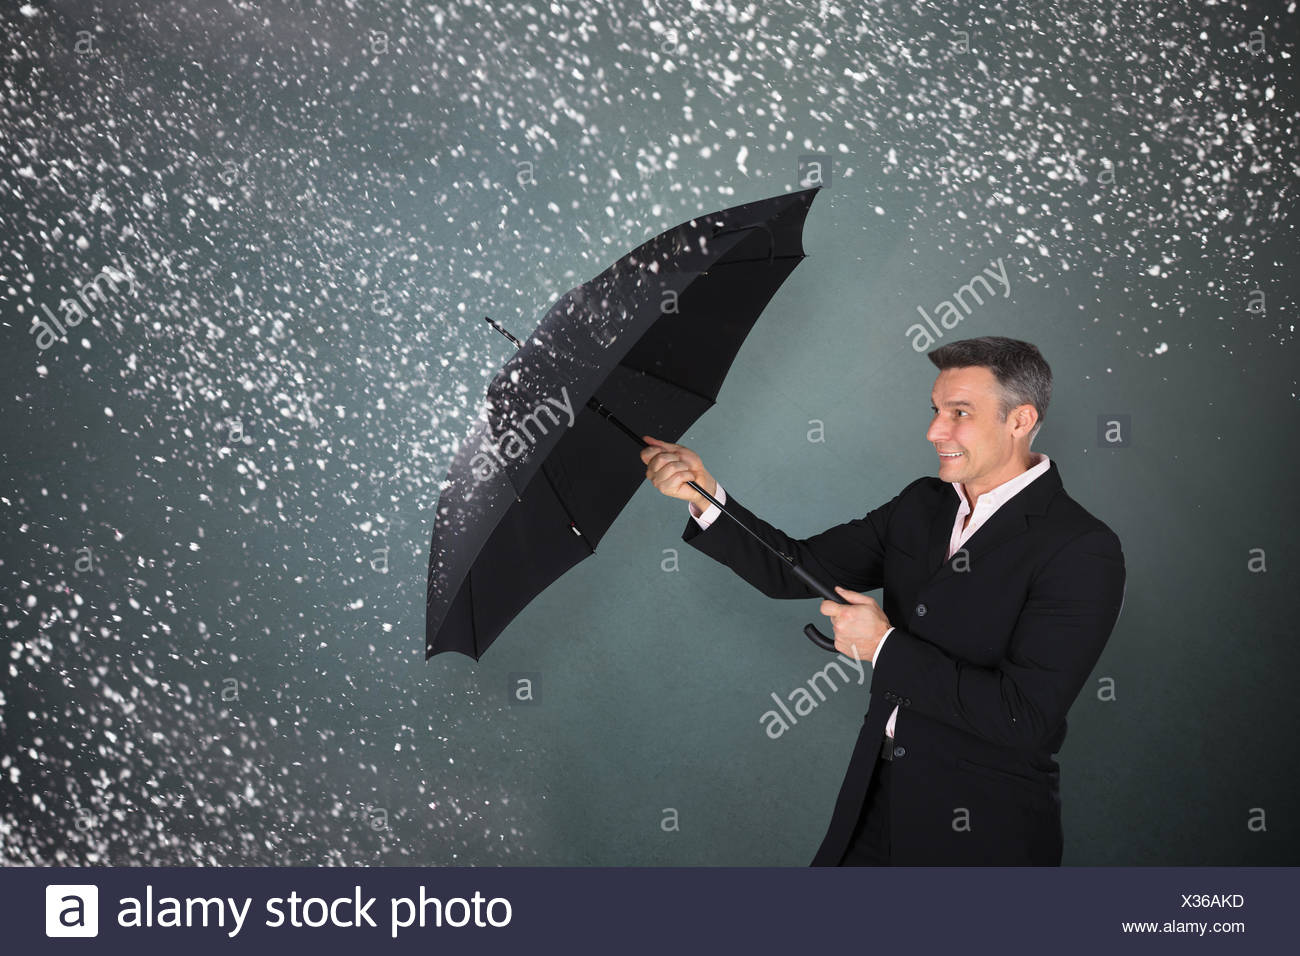 Businessman With An Umbrella In Snow - Stock Image